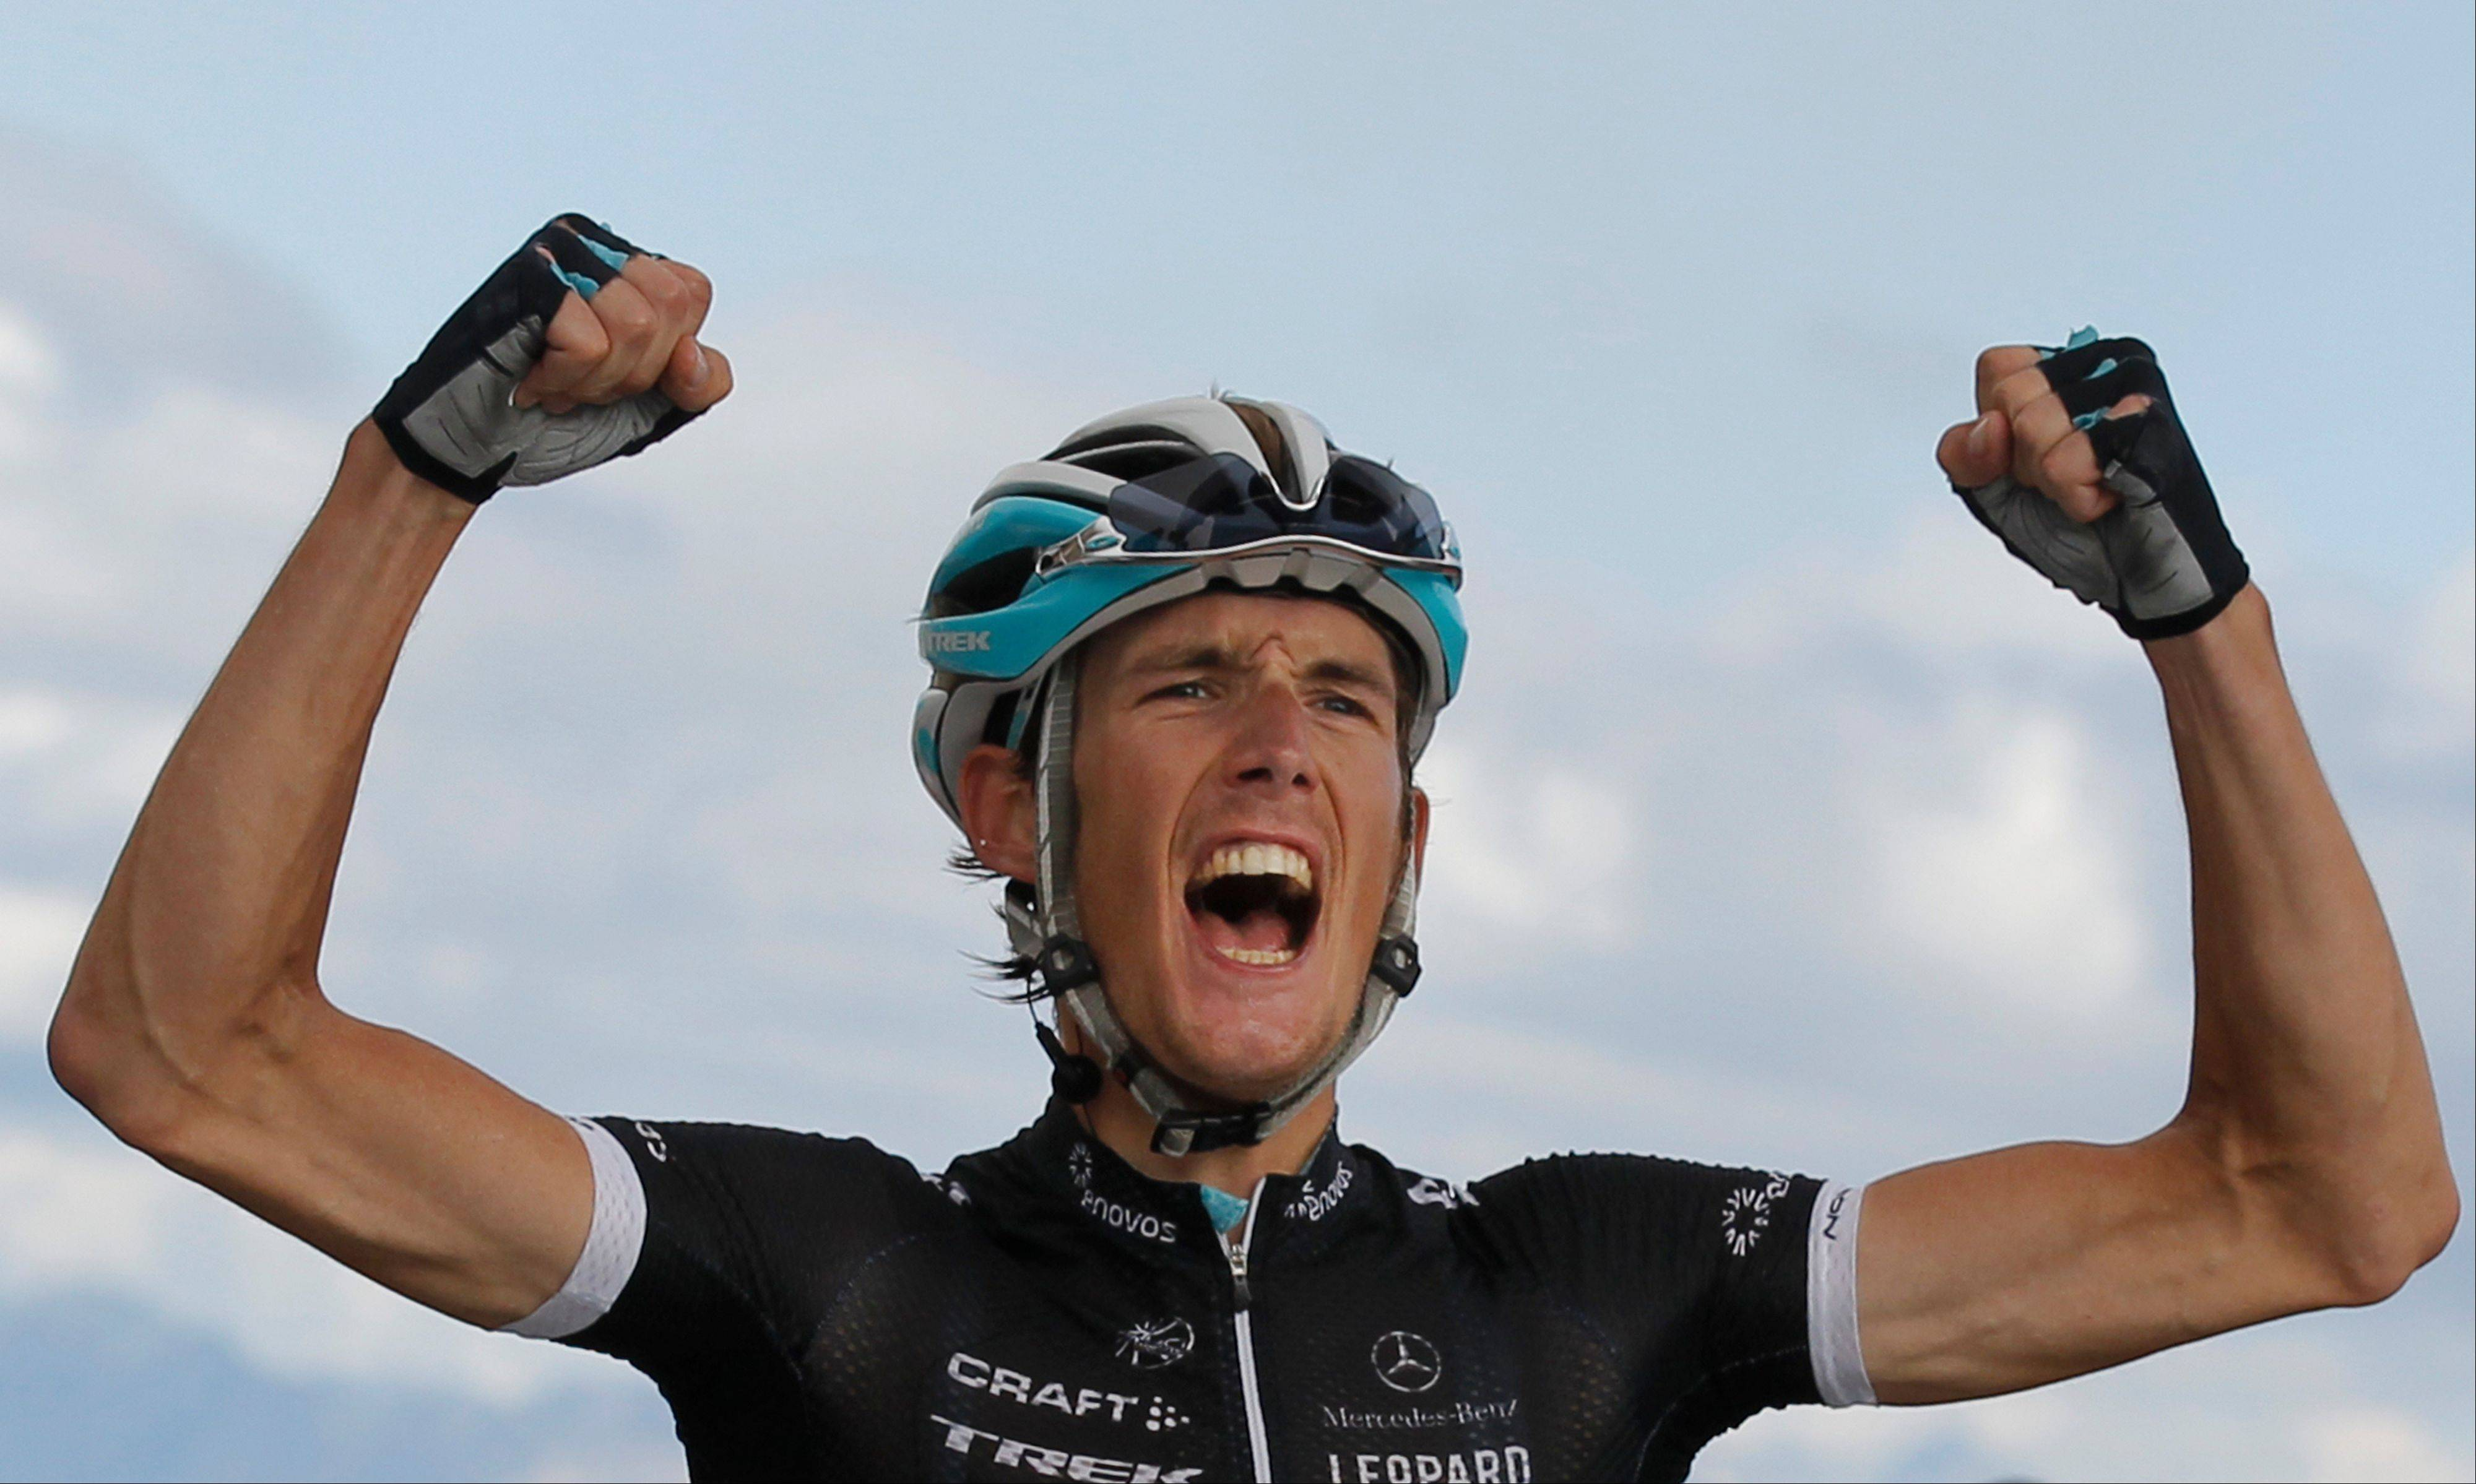 Andy Schleck finished on the podium each year from 2009 to 2011.